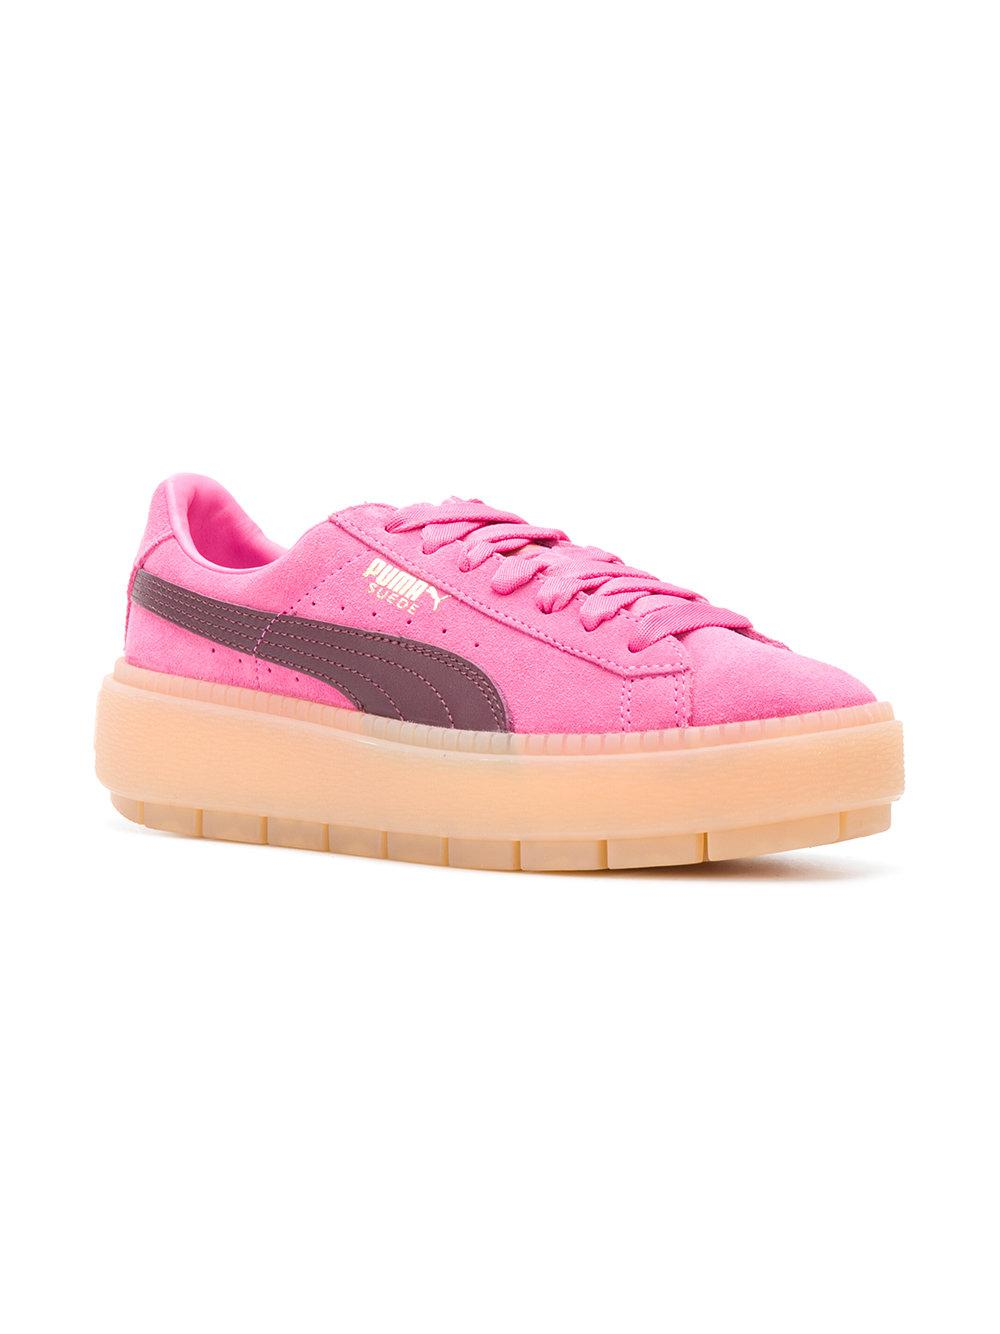 lyst puma platform trace block women 39 s sneakers in pink. Black Bedroom Furniture Sets. Home Design Ideas